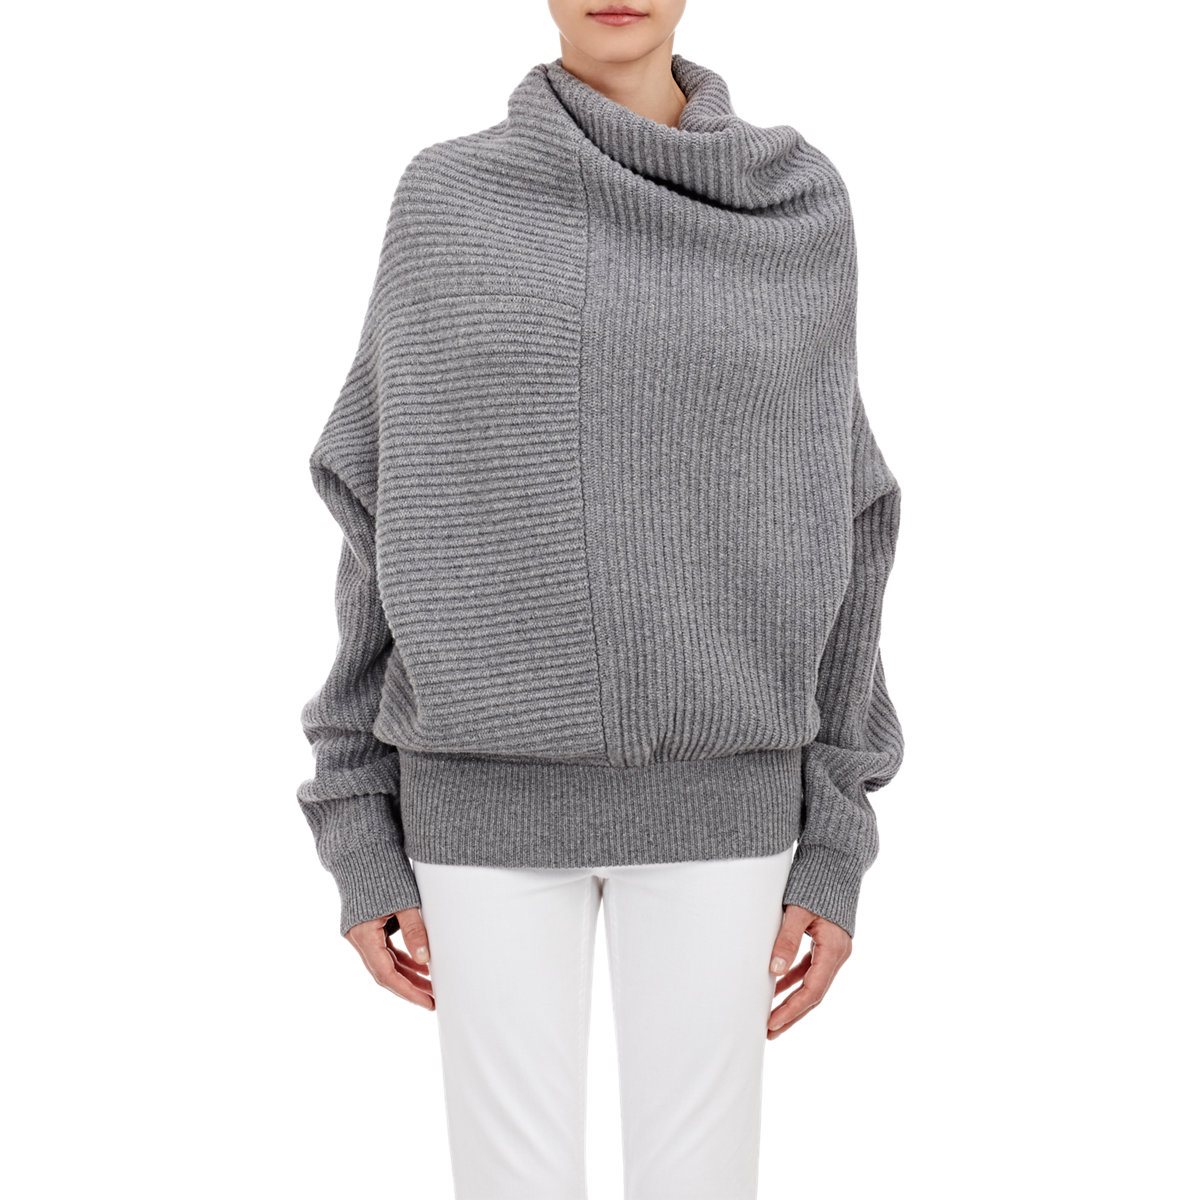 acne studios oversized jacy turtleneck sweater in gray lyst. Black Bedroom Furniture Sets. Home Design Ideas